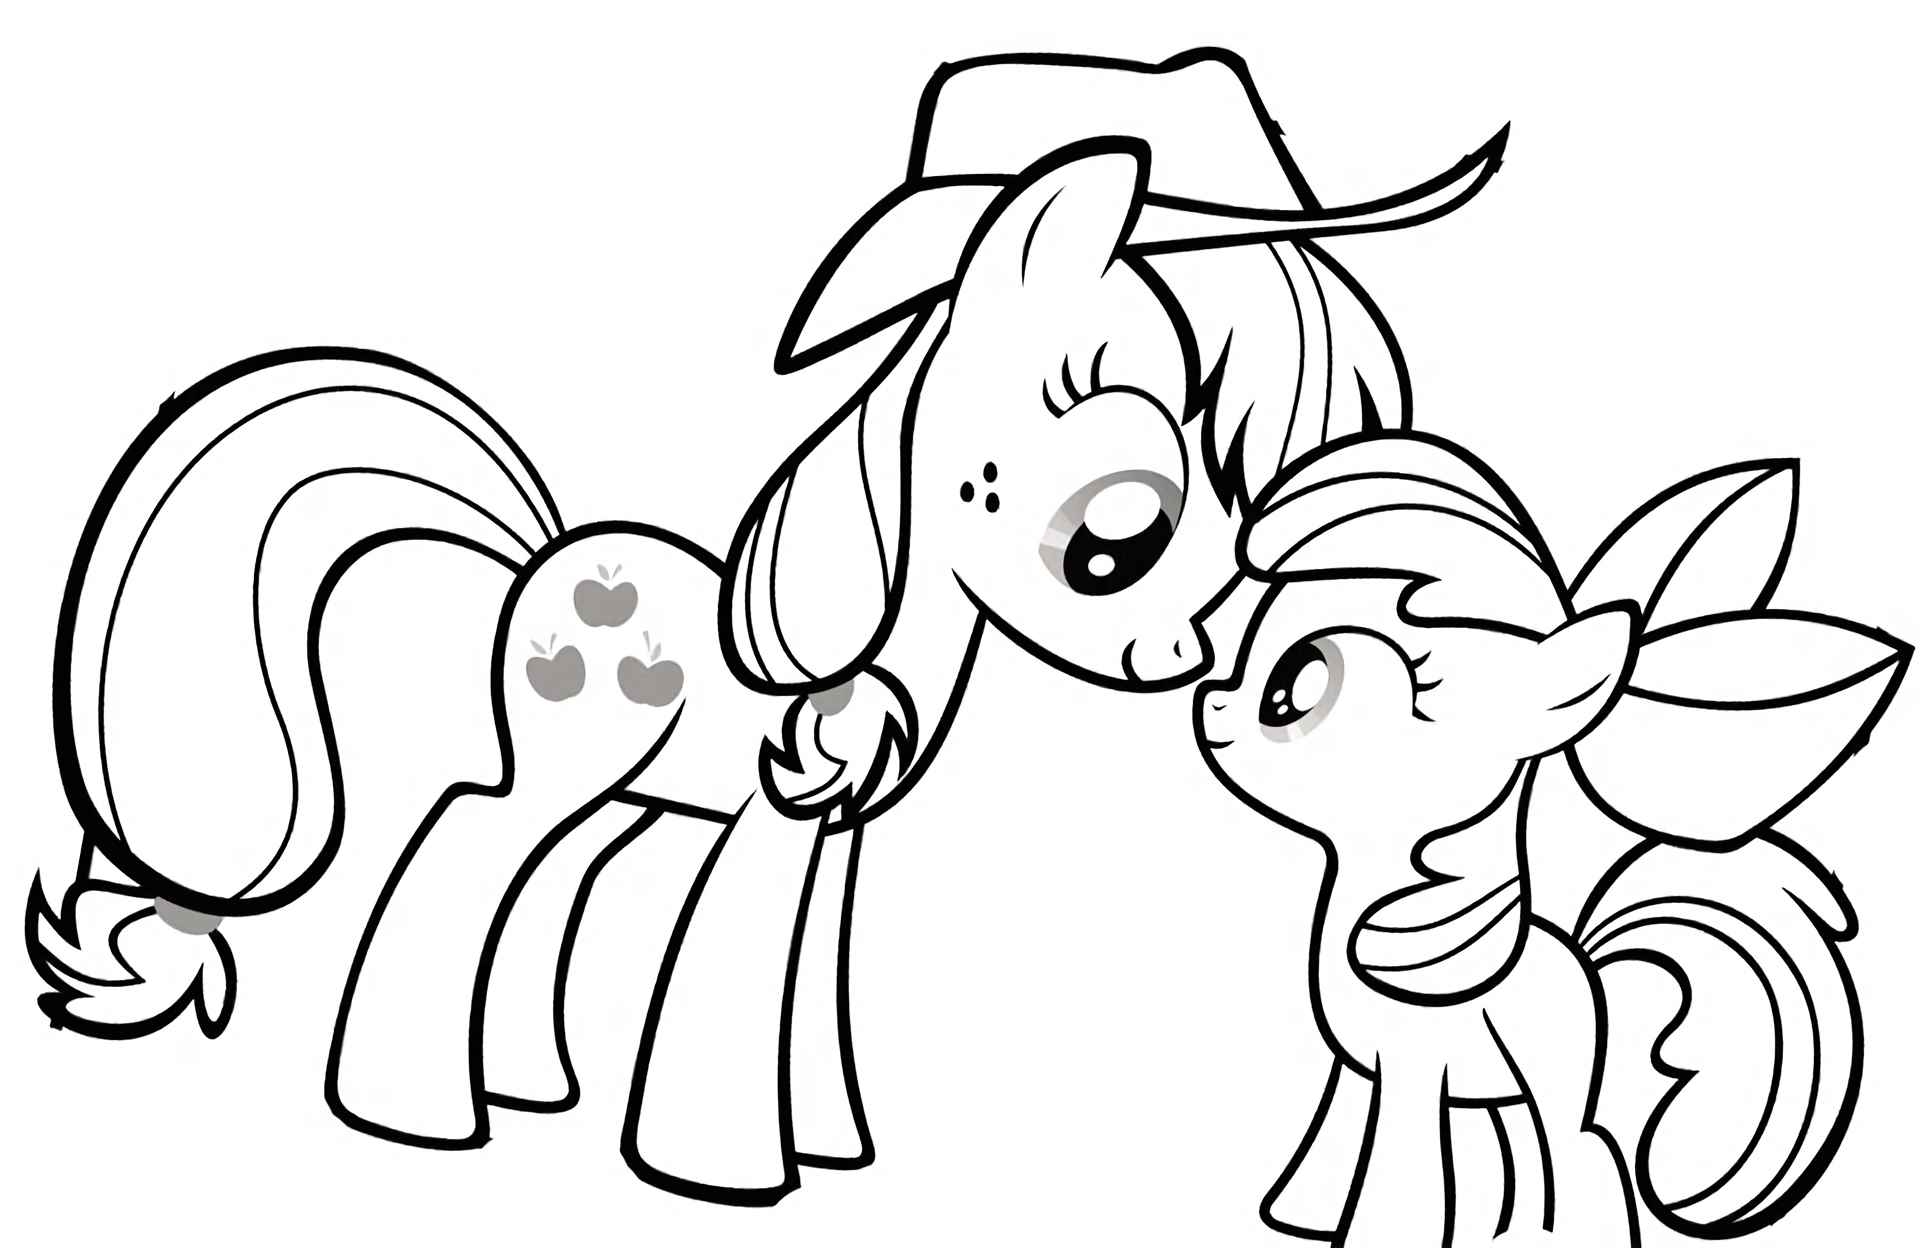 Image Of Pony Applejack Communicates With Her Sister Apple Bloom